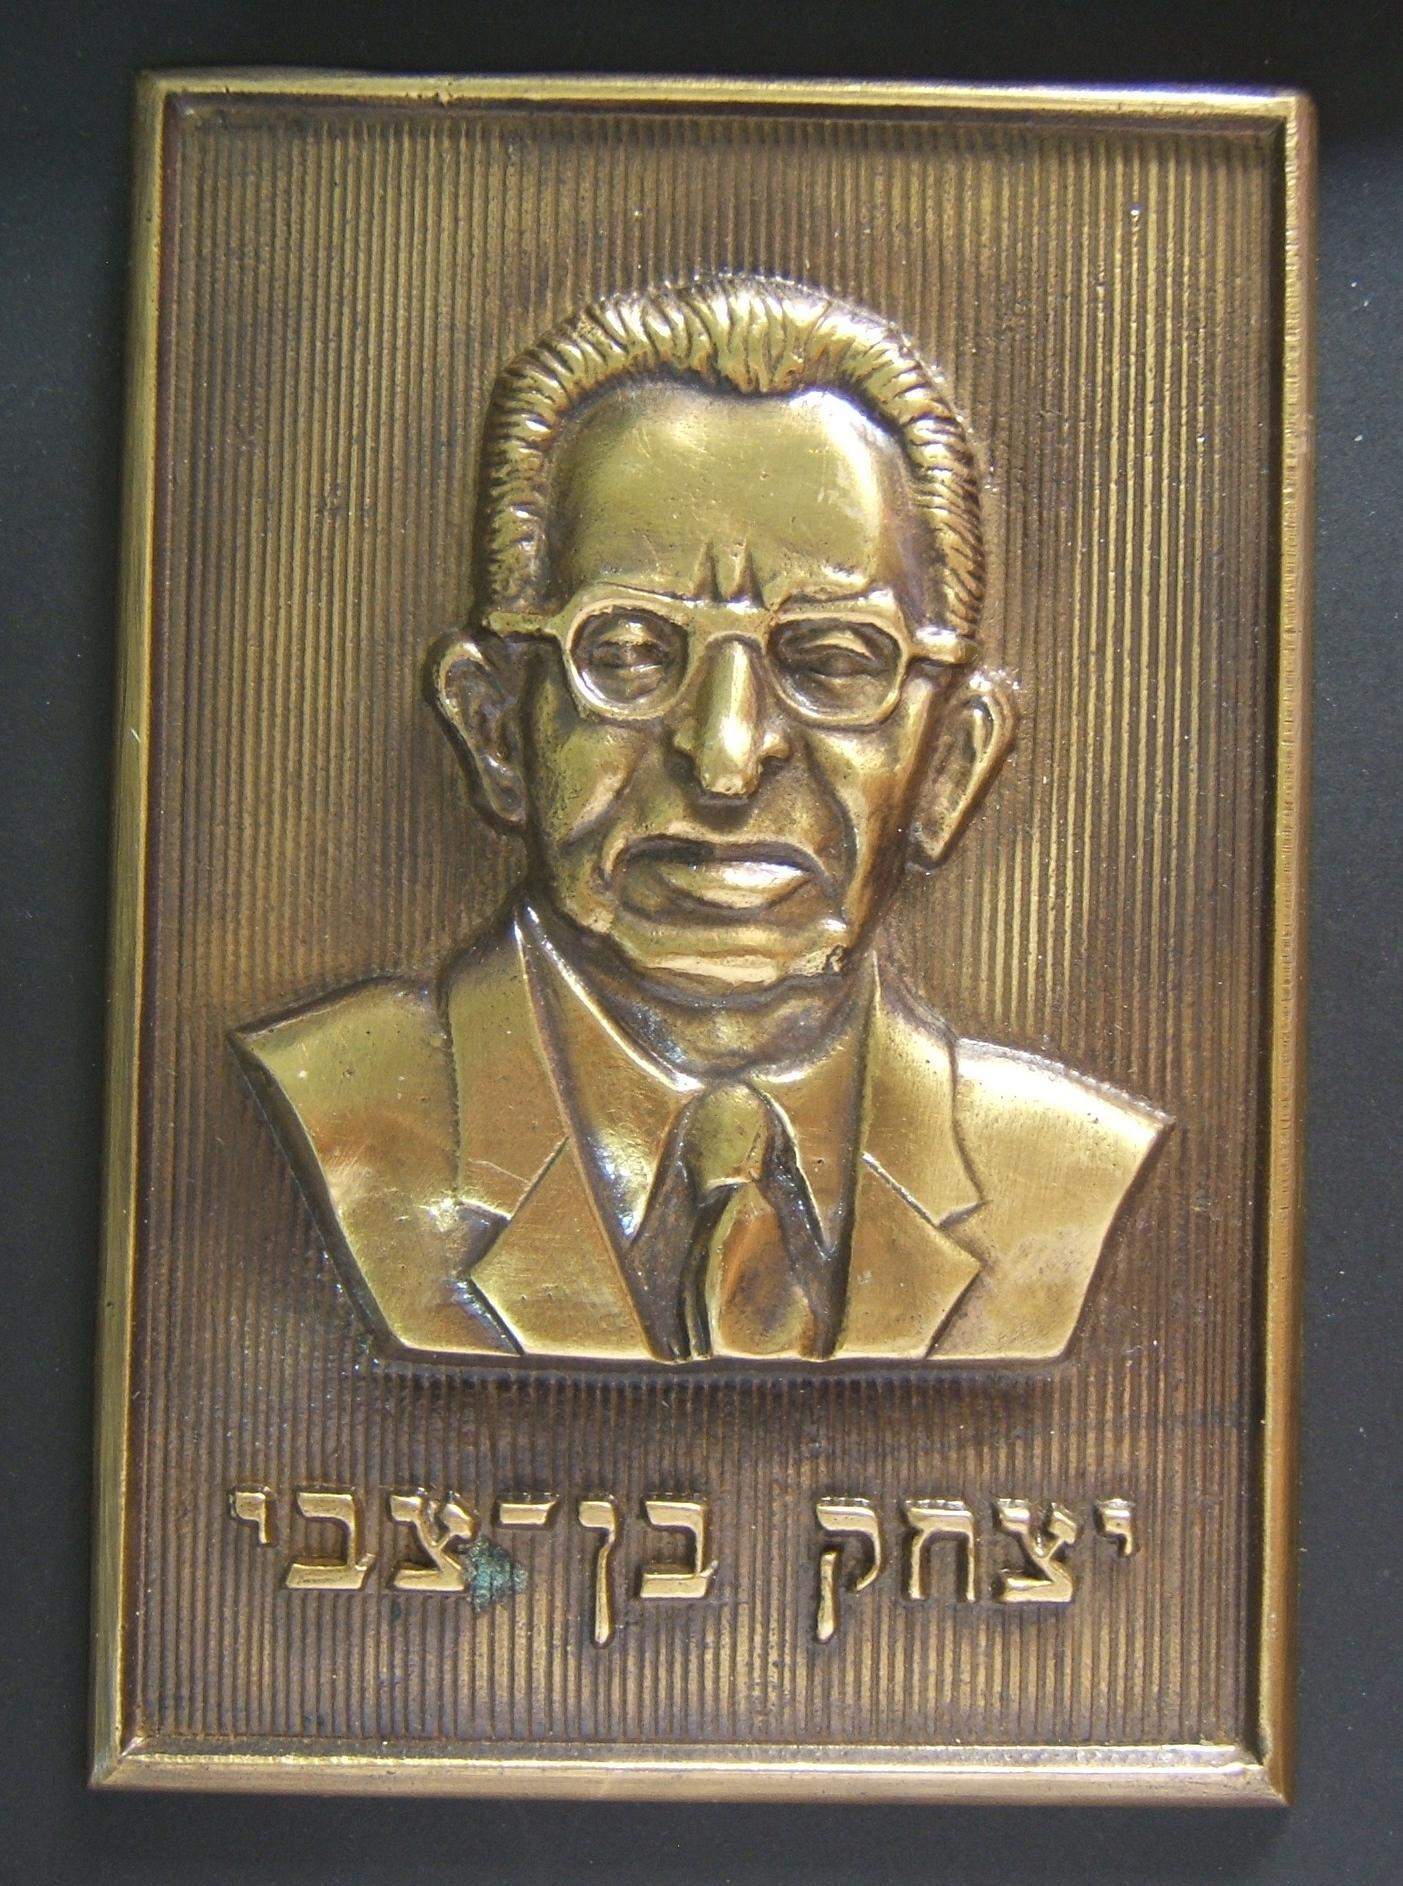 Israel: [President] Yitzhak Ben-Zvi plaque by Yehuda Hershkovitz, ND (circa. 1952-1963); cast brass or brass-plated bronze with laquered surface; size: 11.1 x 15.85cm; weight: 511g